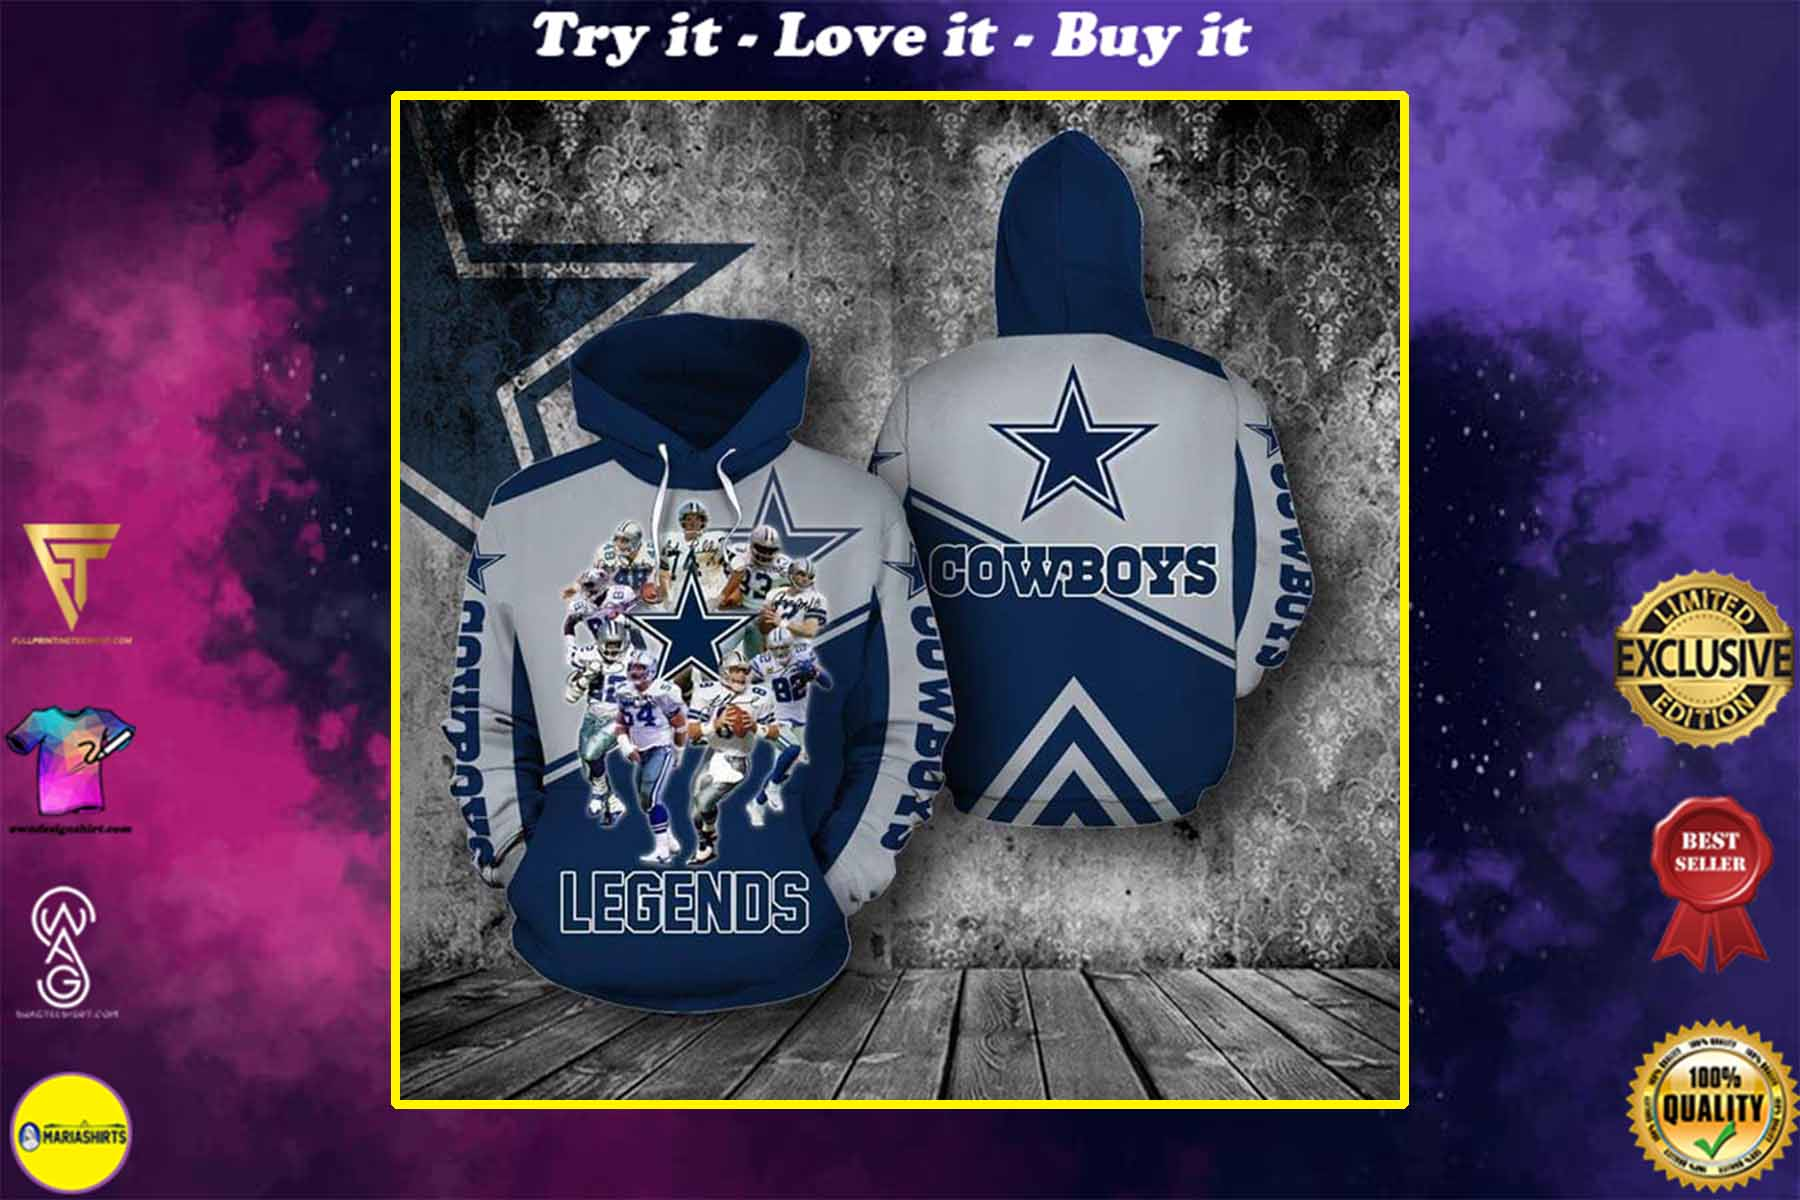 [special edition] the dallas cowboys legends members full over printed shirt - maria